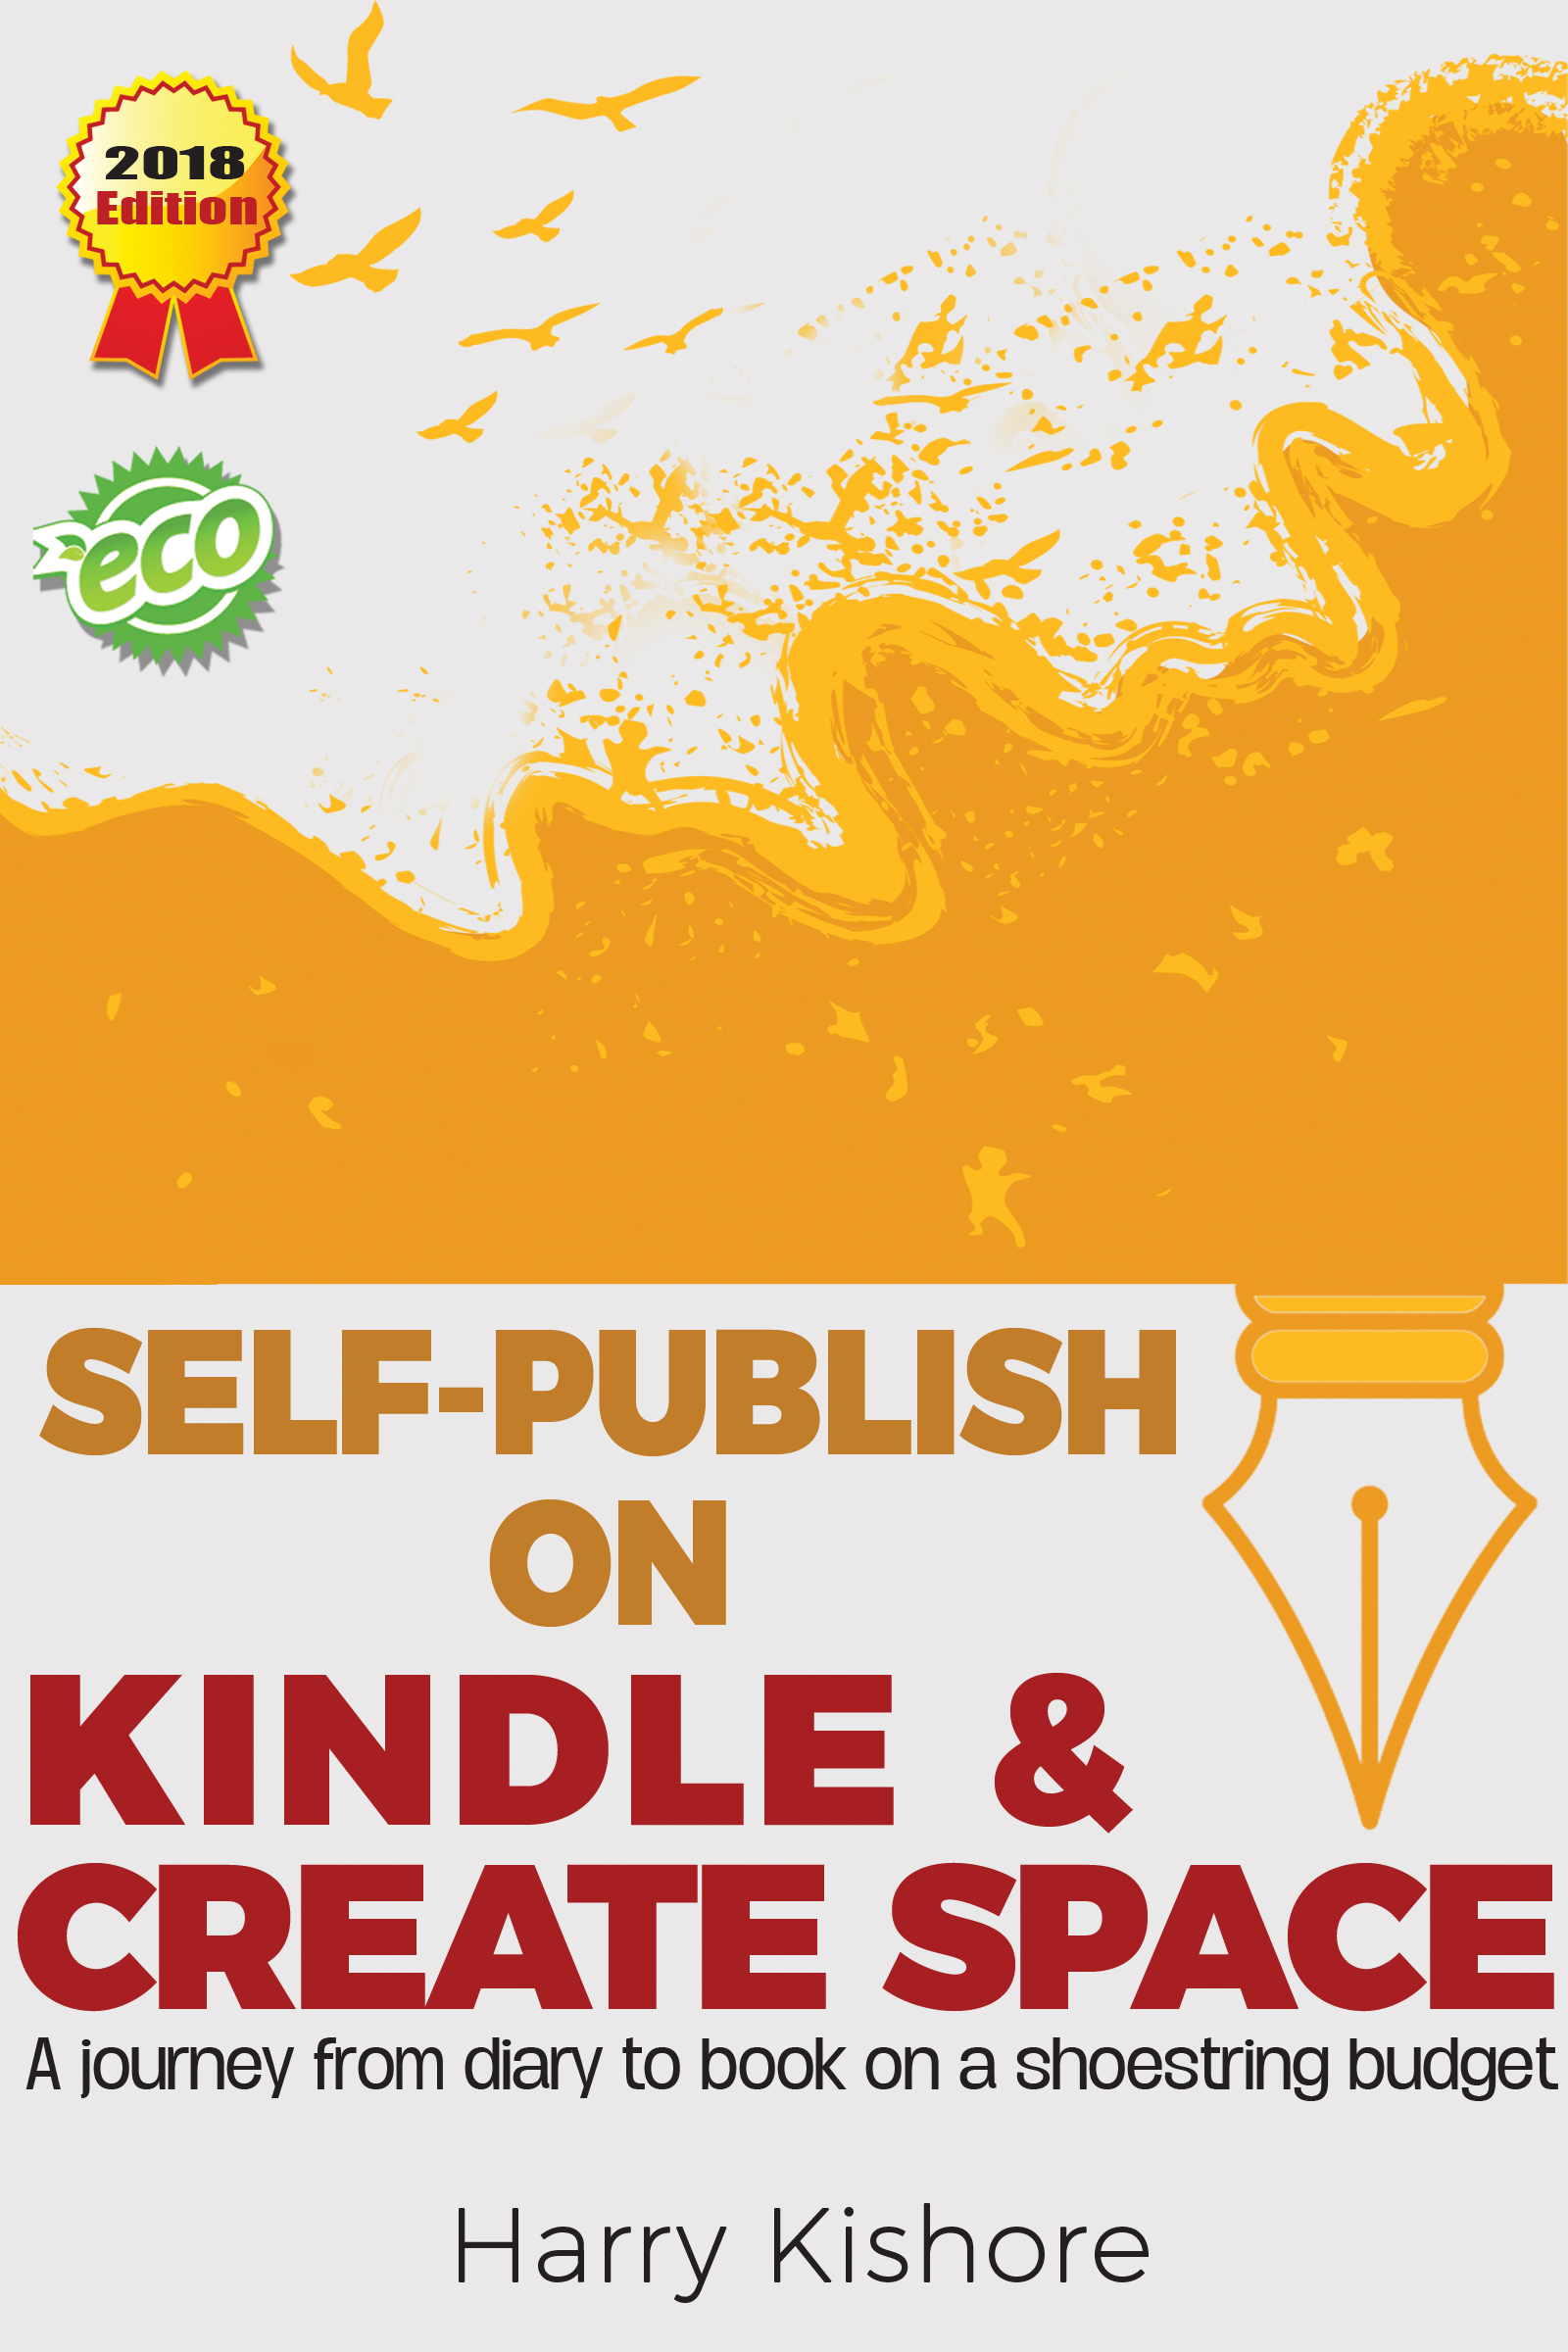 Self-publish on kindle and createspace: a journey from diary to book on a shoestring budget